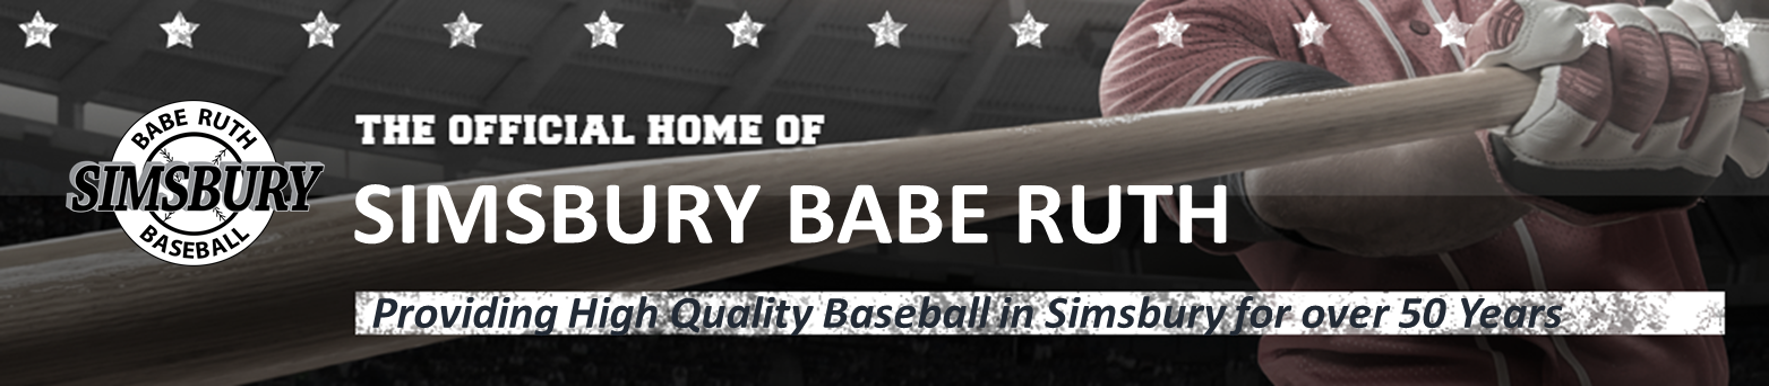 Simsbury Babe Ruth , Baseball, Run, Baseball Field